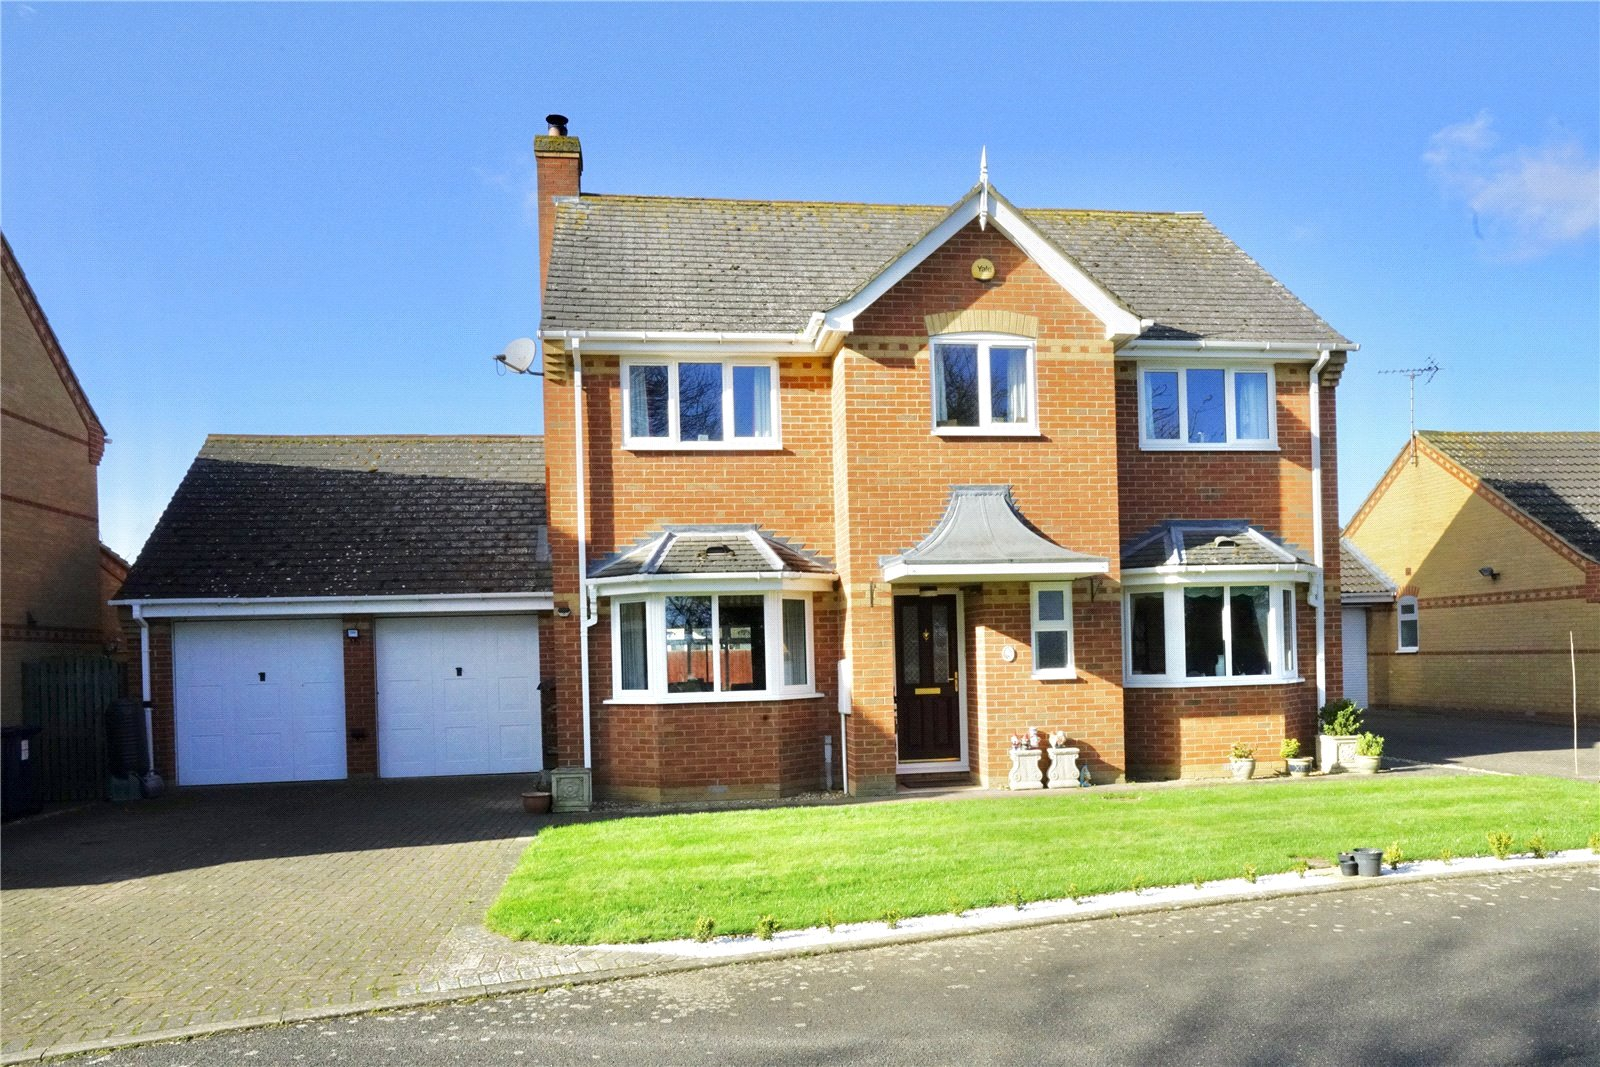 4 bed house for sale in Needingworth, PE27 4UA  - Property Image 1